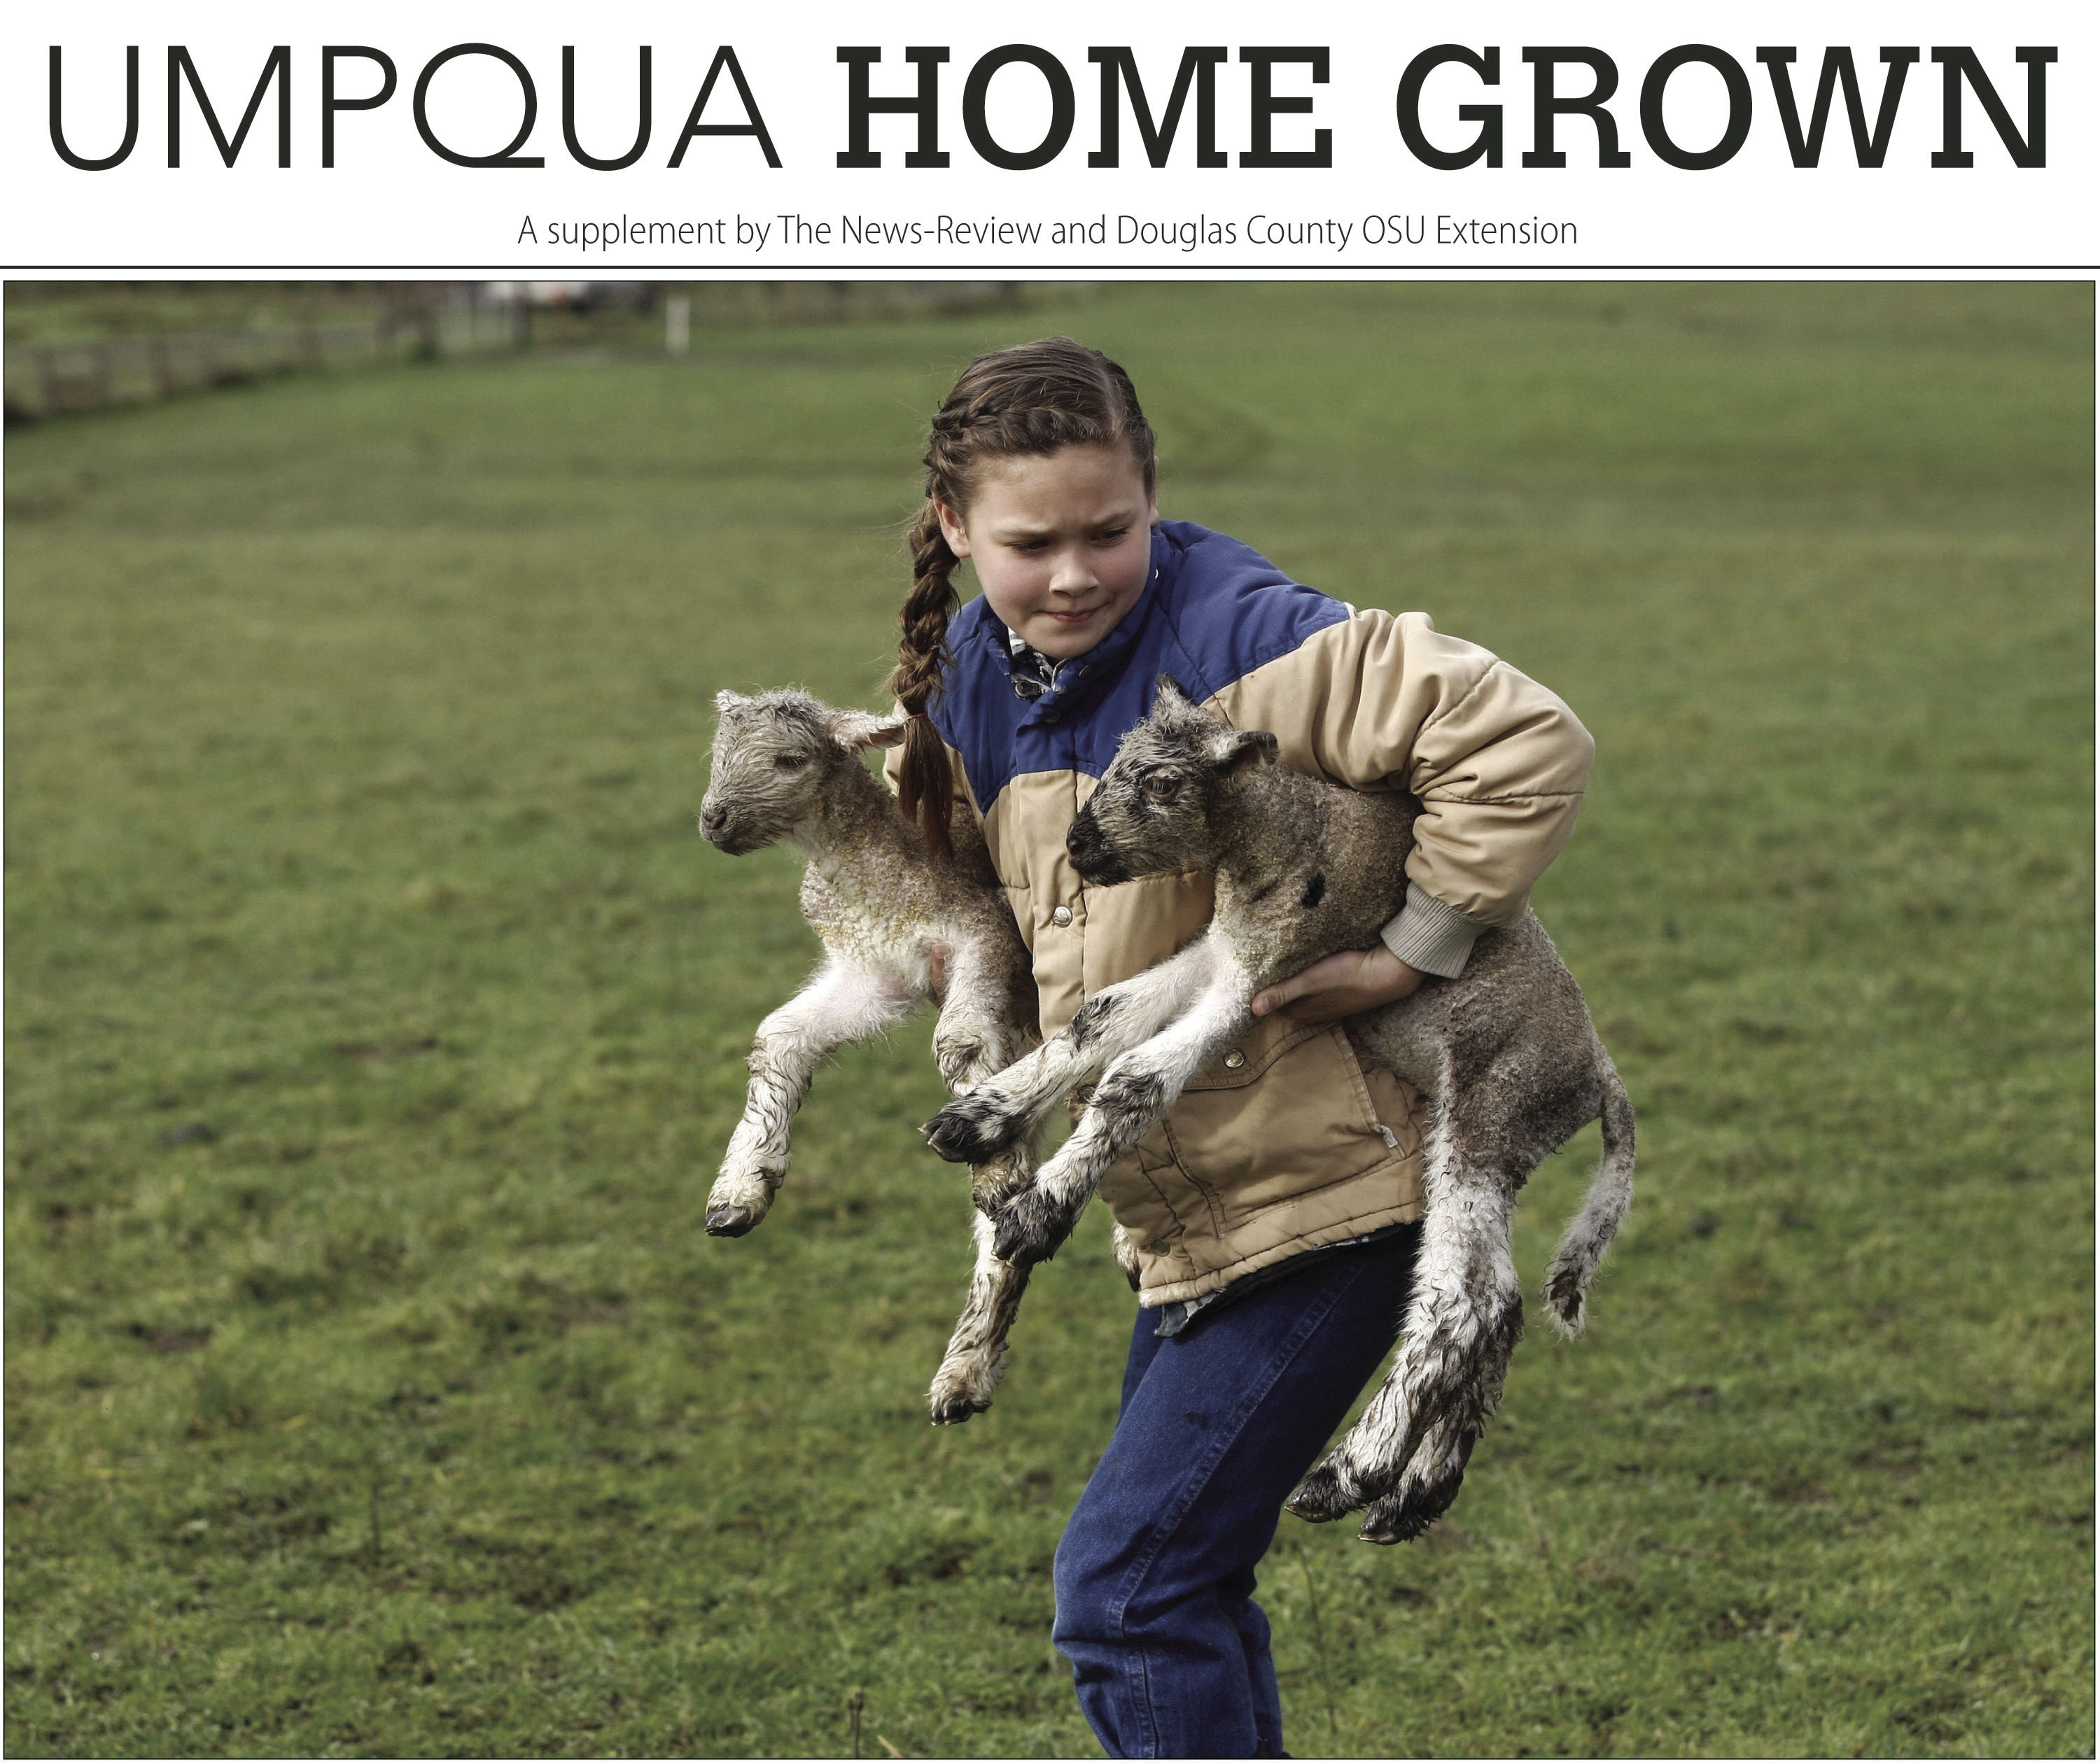 Umpqua Home Grown